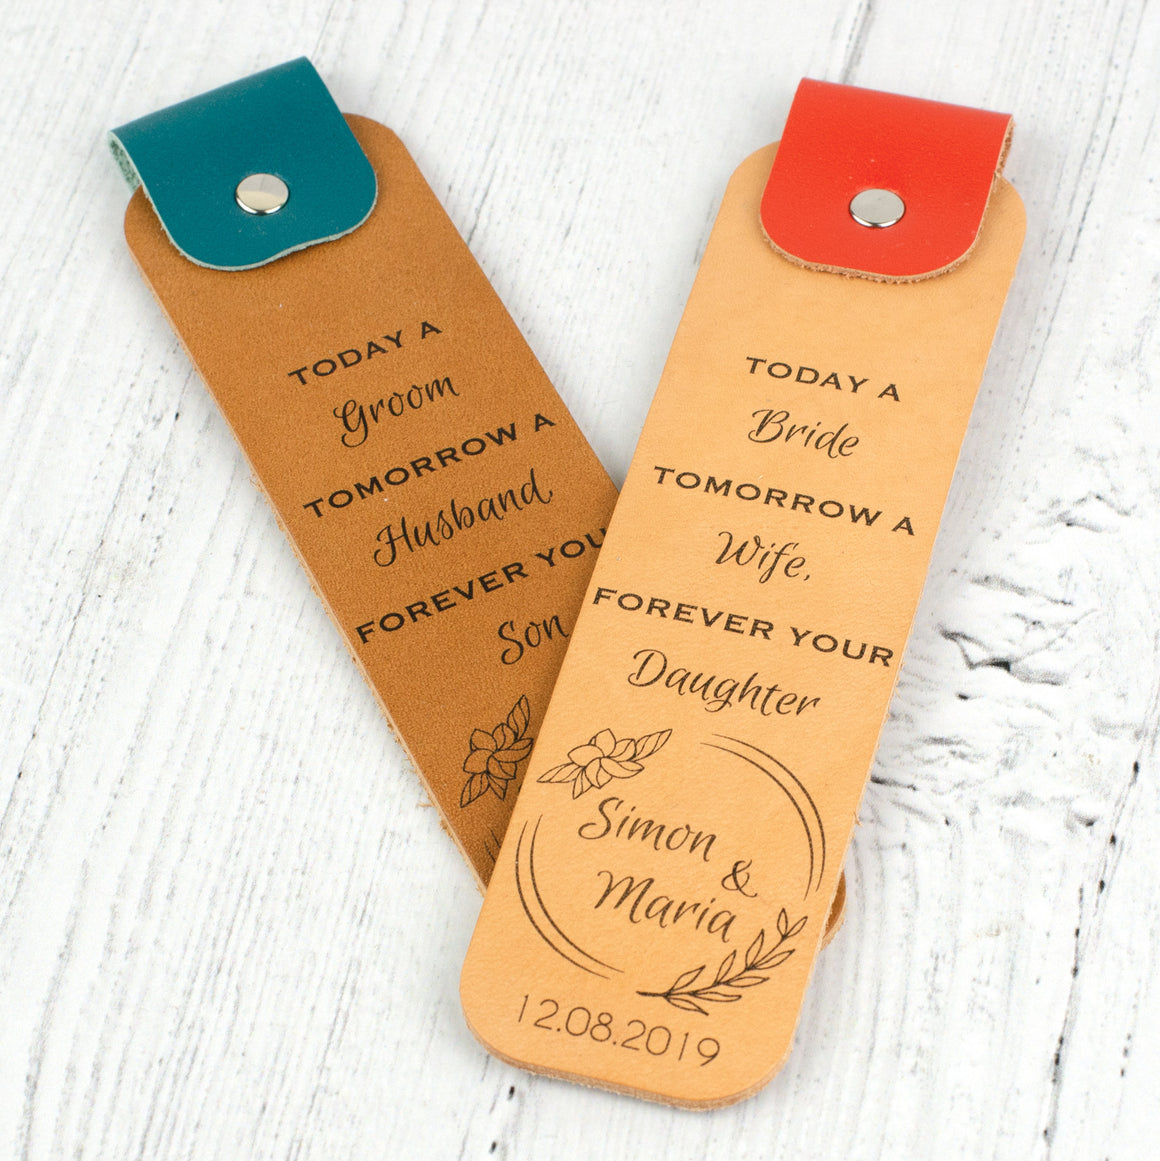 Forever your child bookmark